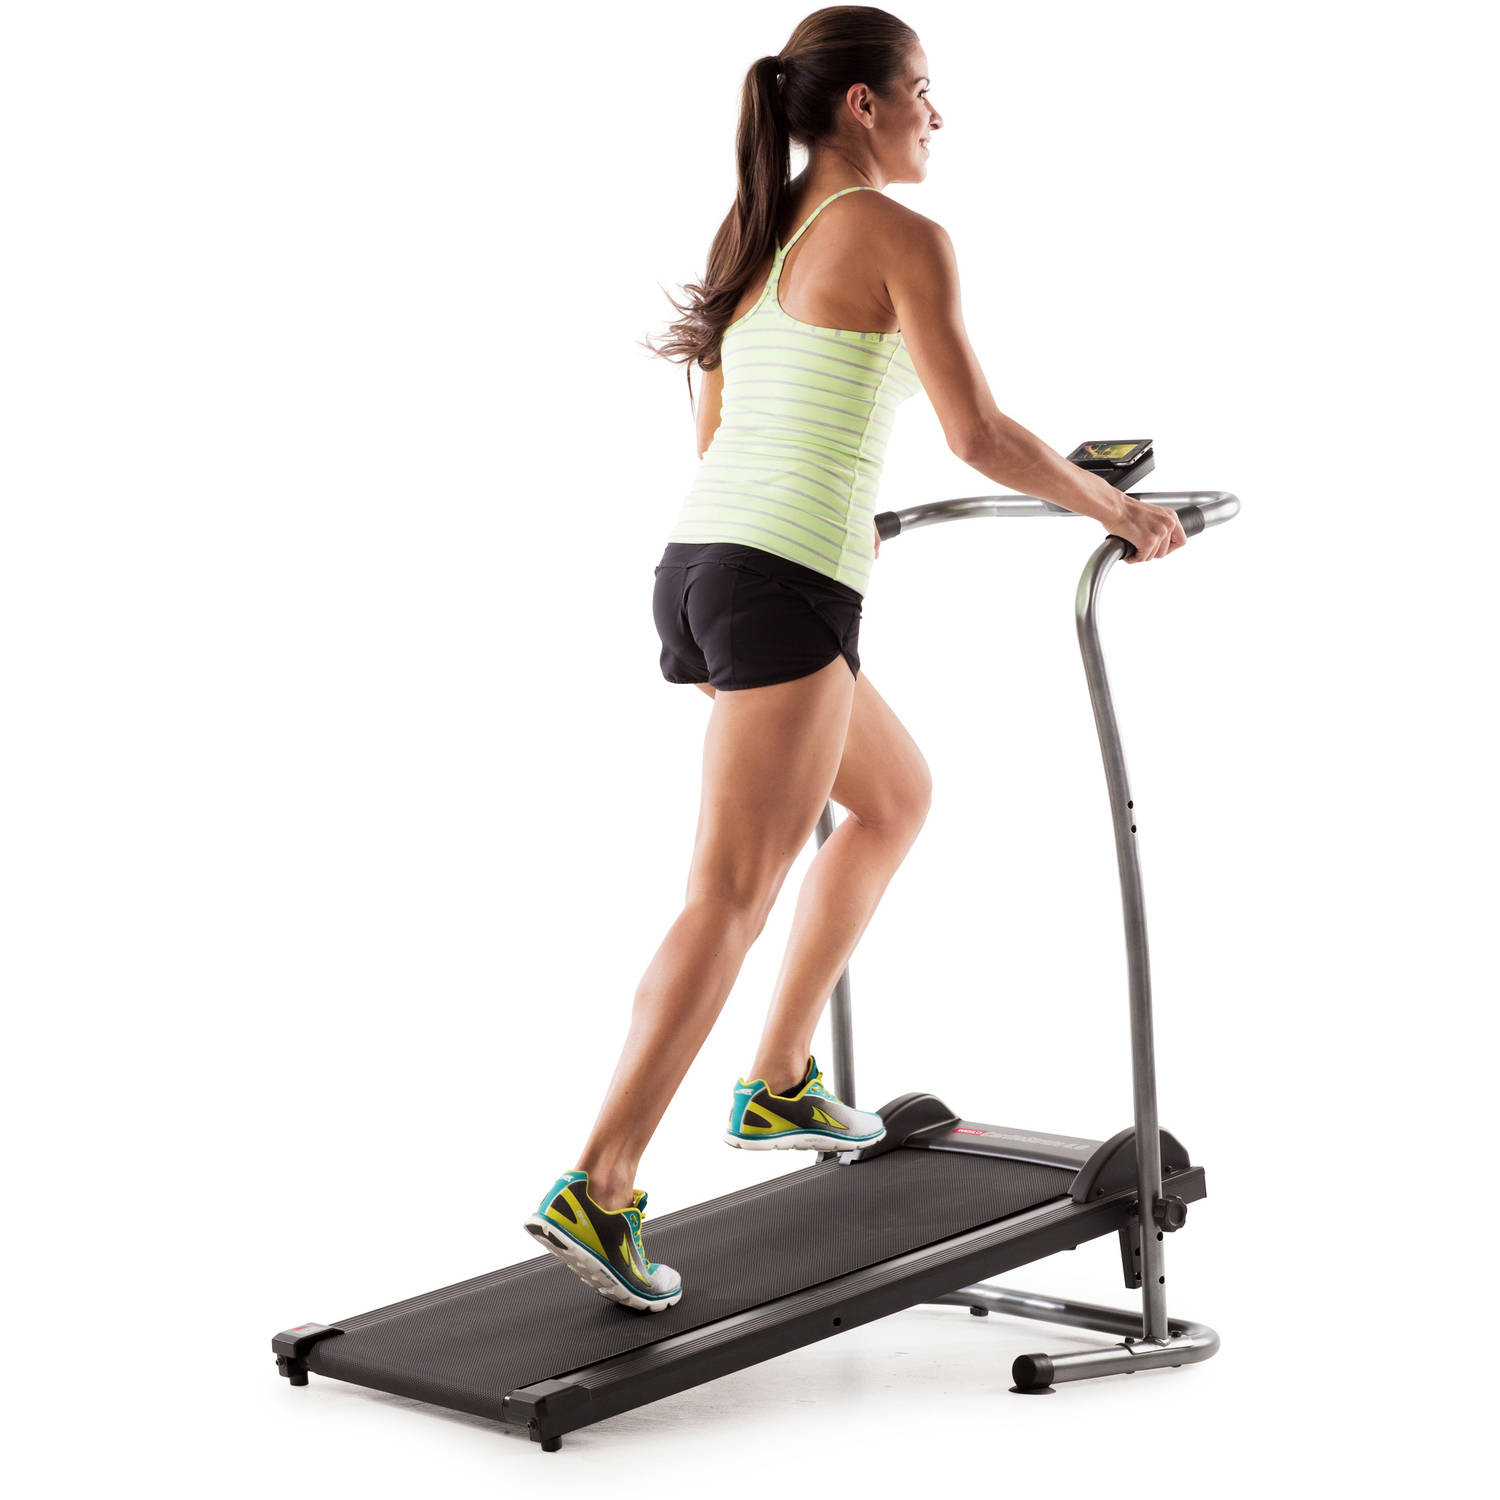 Treadmill Machine Folding Incline Cardio Fitness Exercise